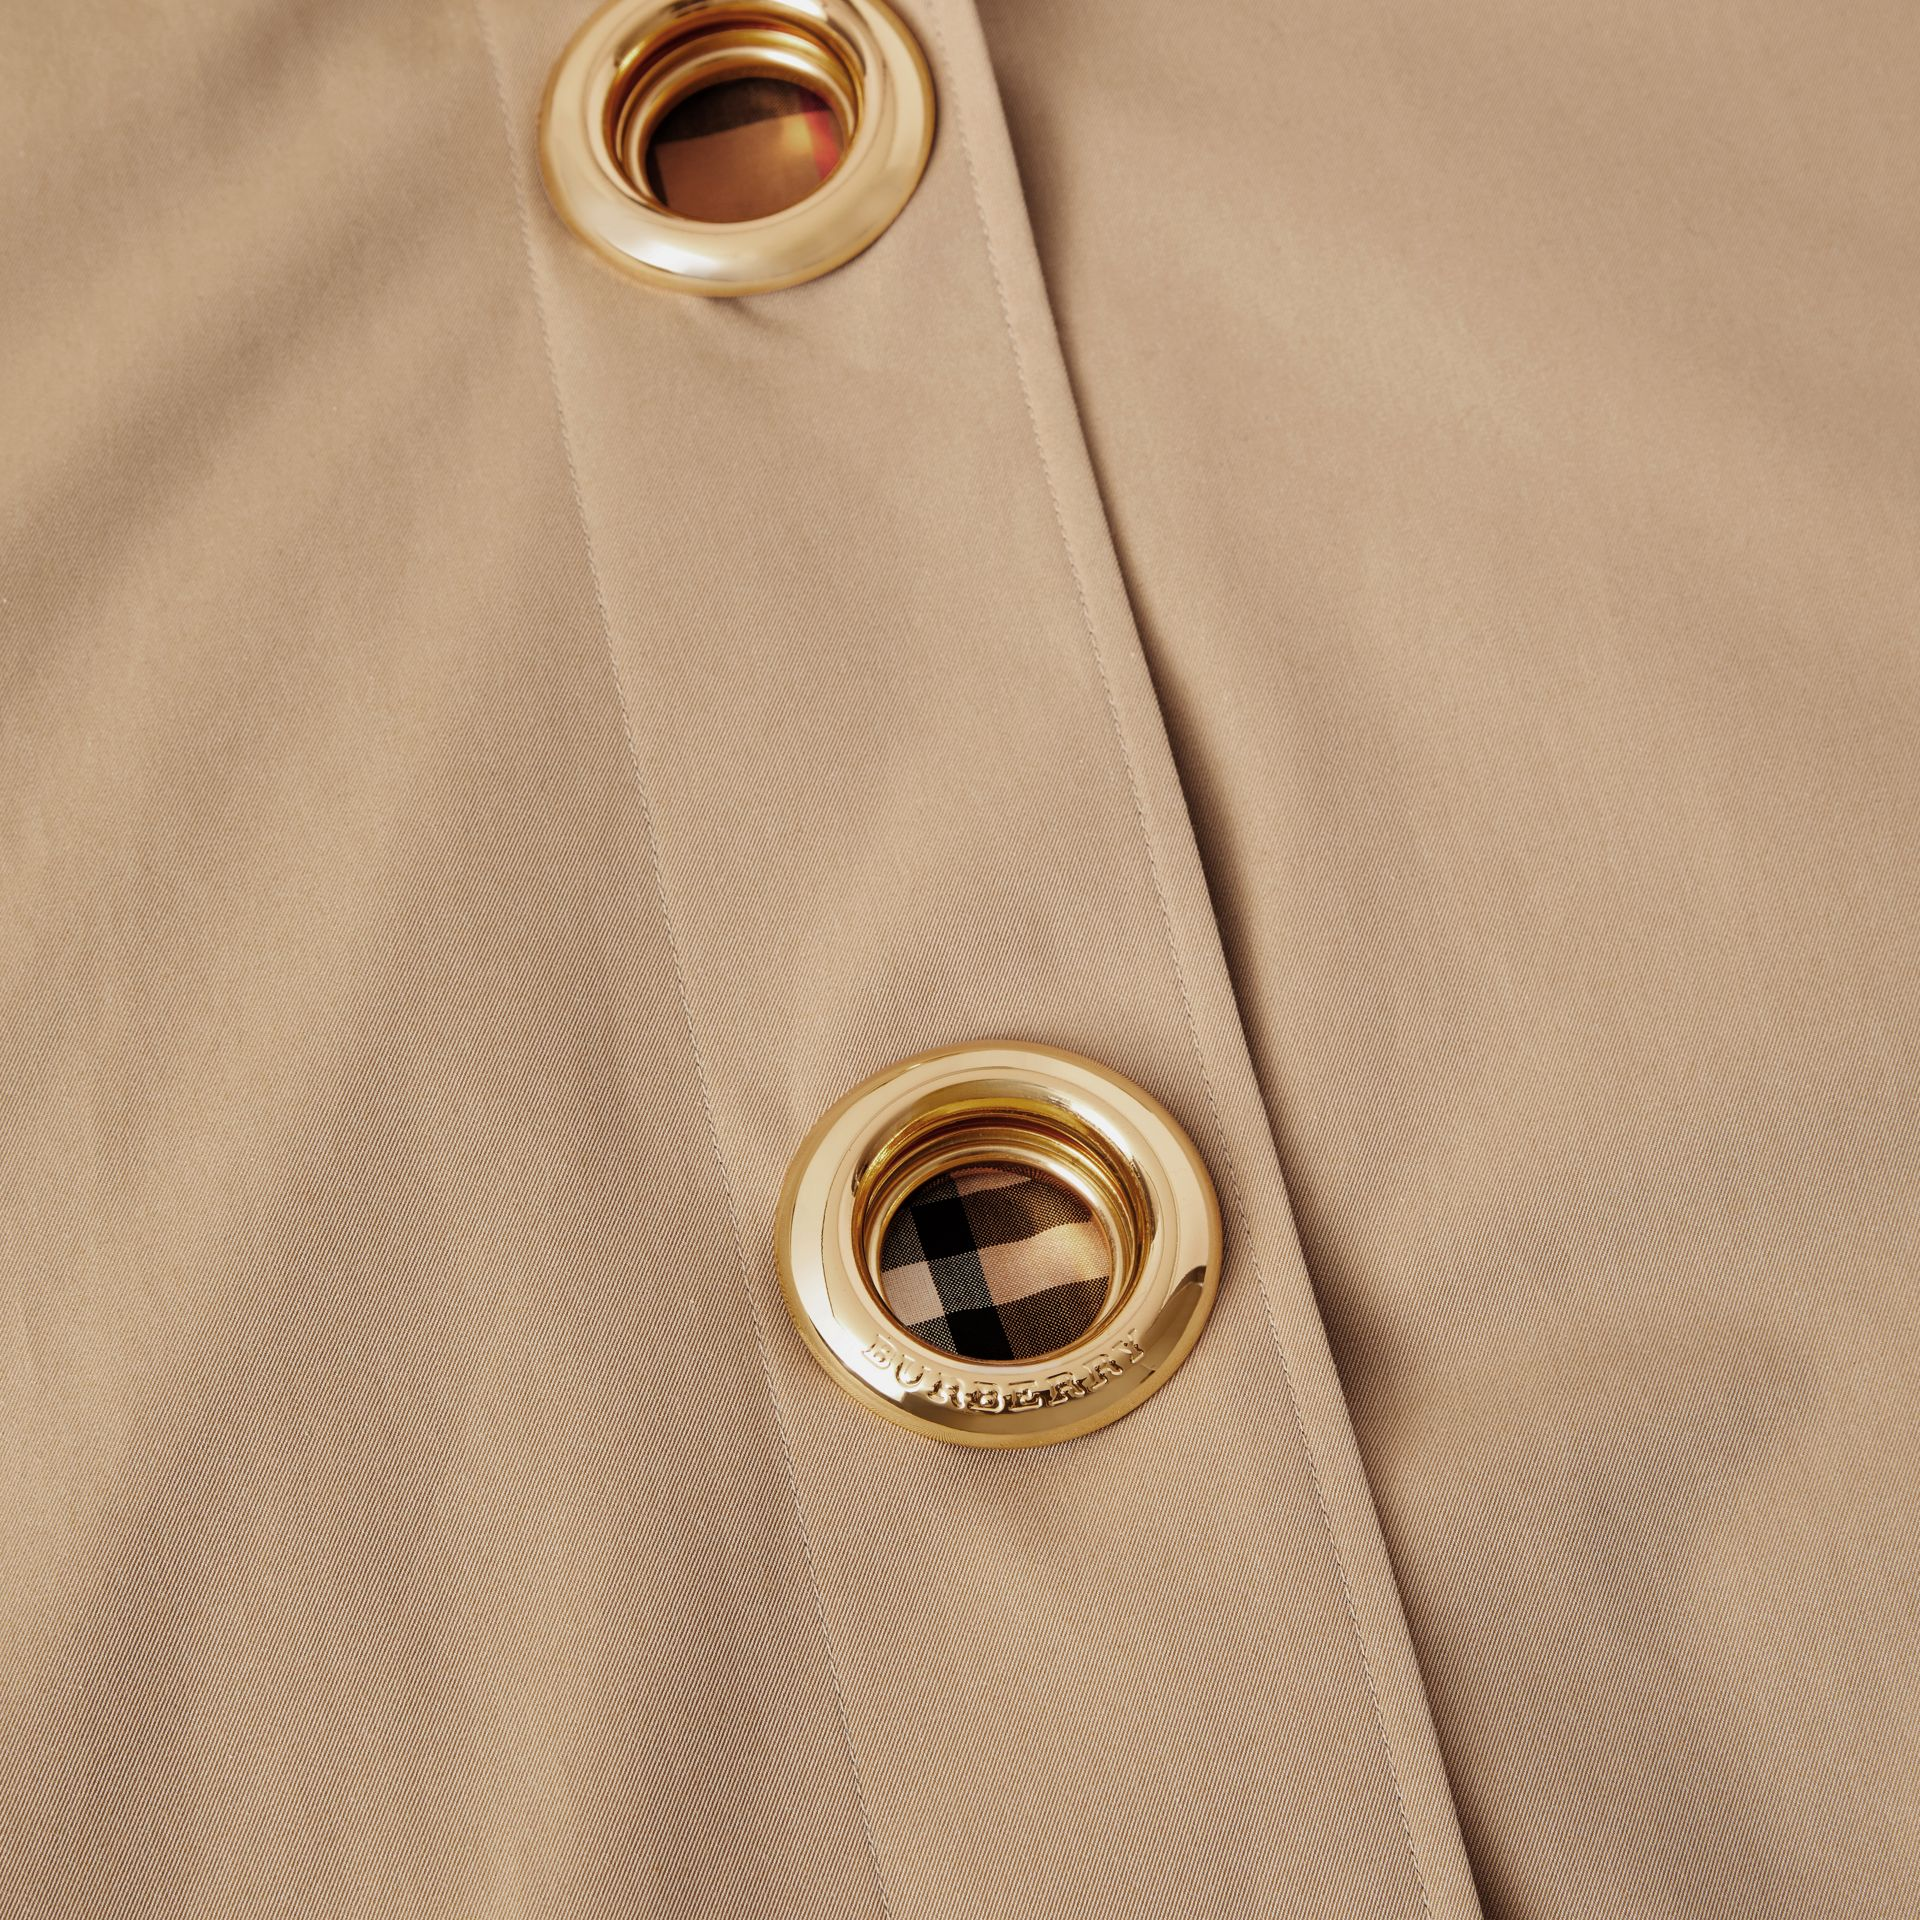 Grommet Detail Cotton Gabardine Car Coat in Honey - Women | Burberry - gallery image 4